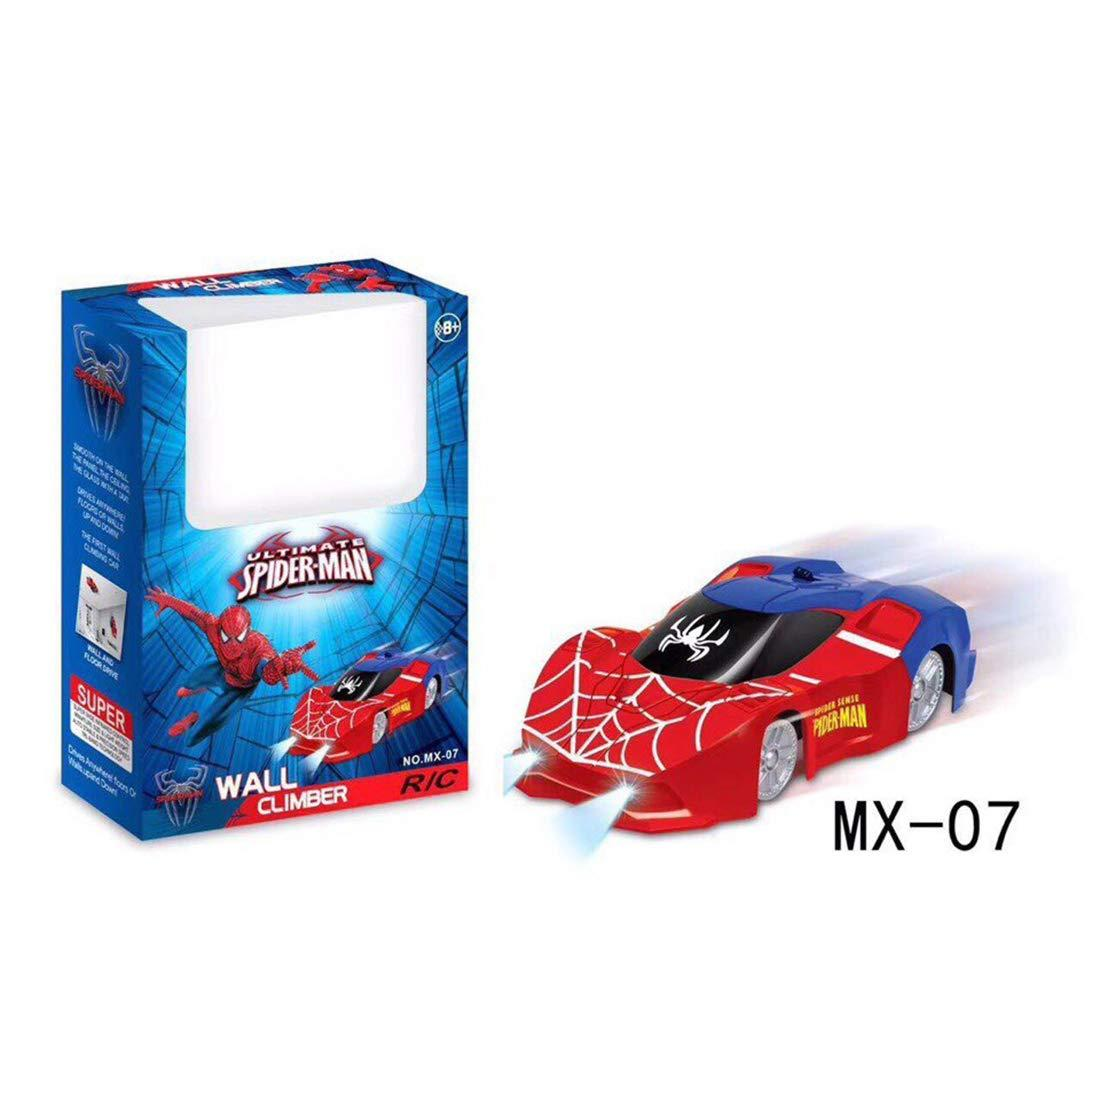 Wall Climber SPIDER-MAN magical car Wall Climbing Car Remote Control Car RC Racing Car Spiderman Car Toys for Kids Wall Stunt Climber Birthday Gifts - Red